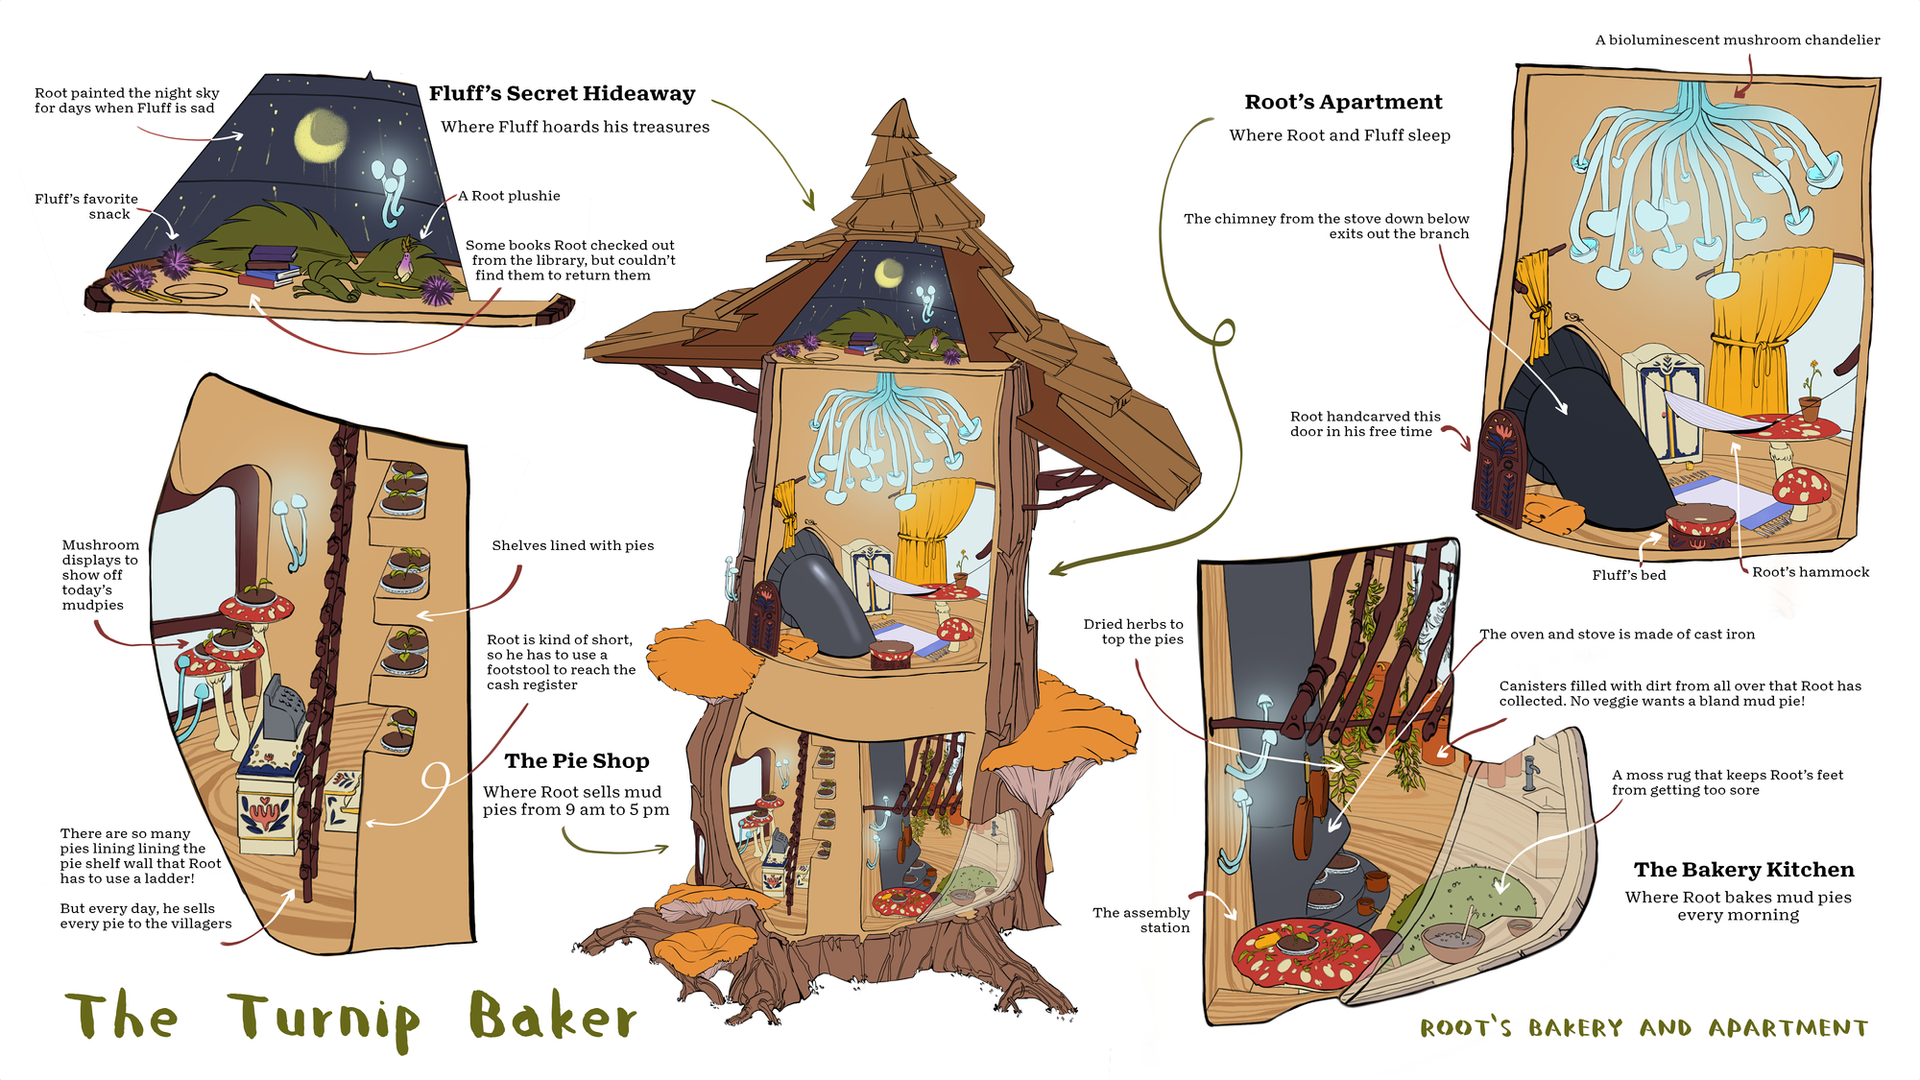 Root's Bakery and Apartment Cutaway